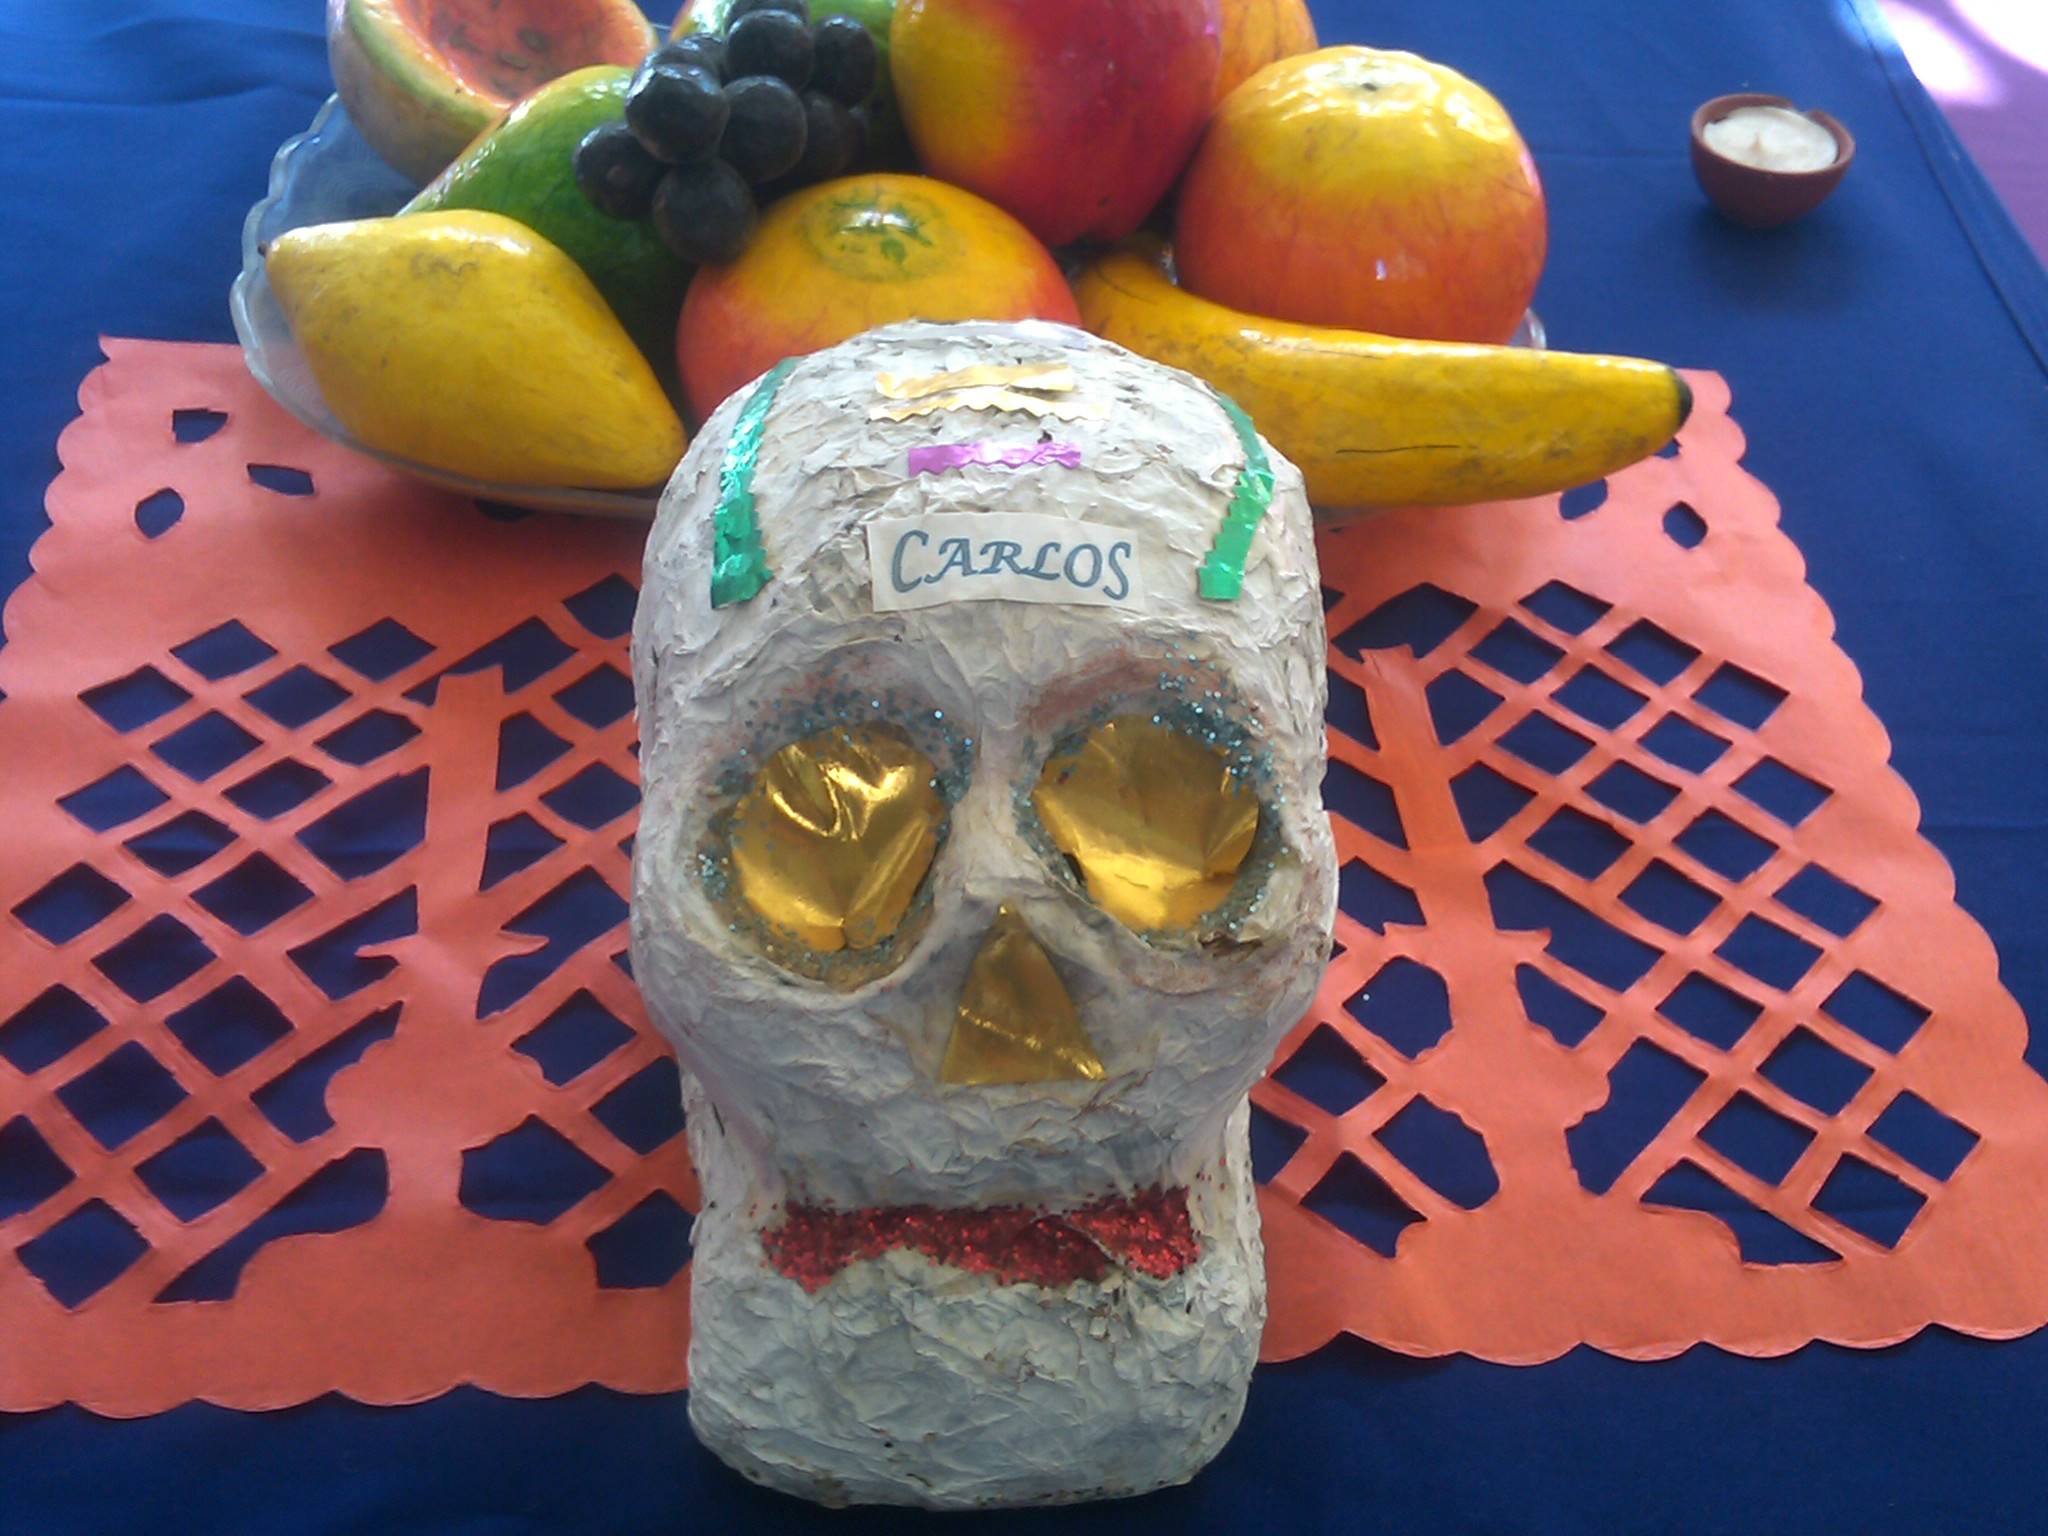 Day of the Dead Altar 3, Casa de la Cultura, Todos Santos, BCS